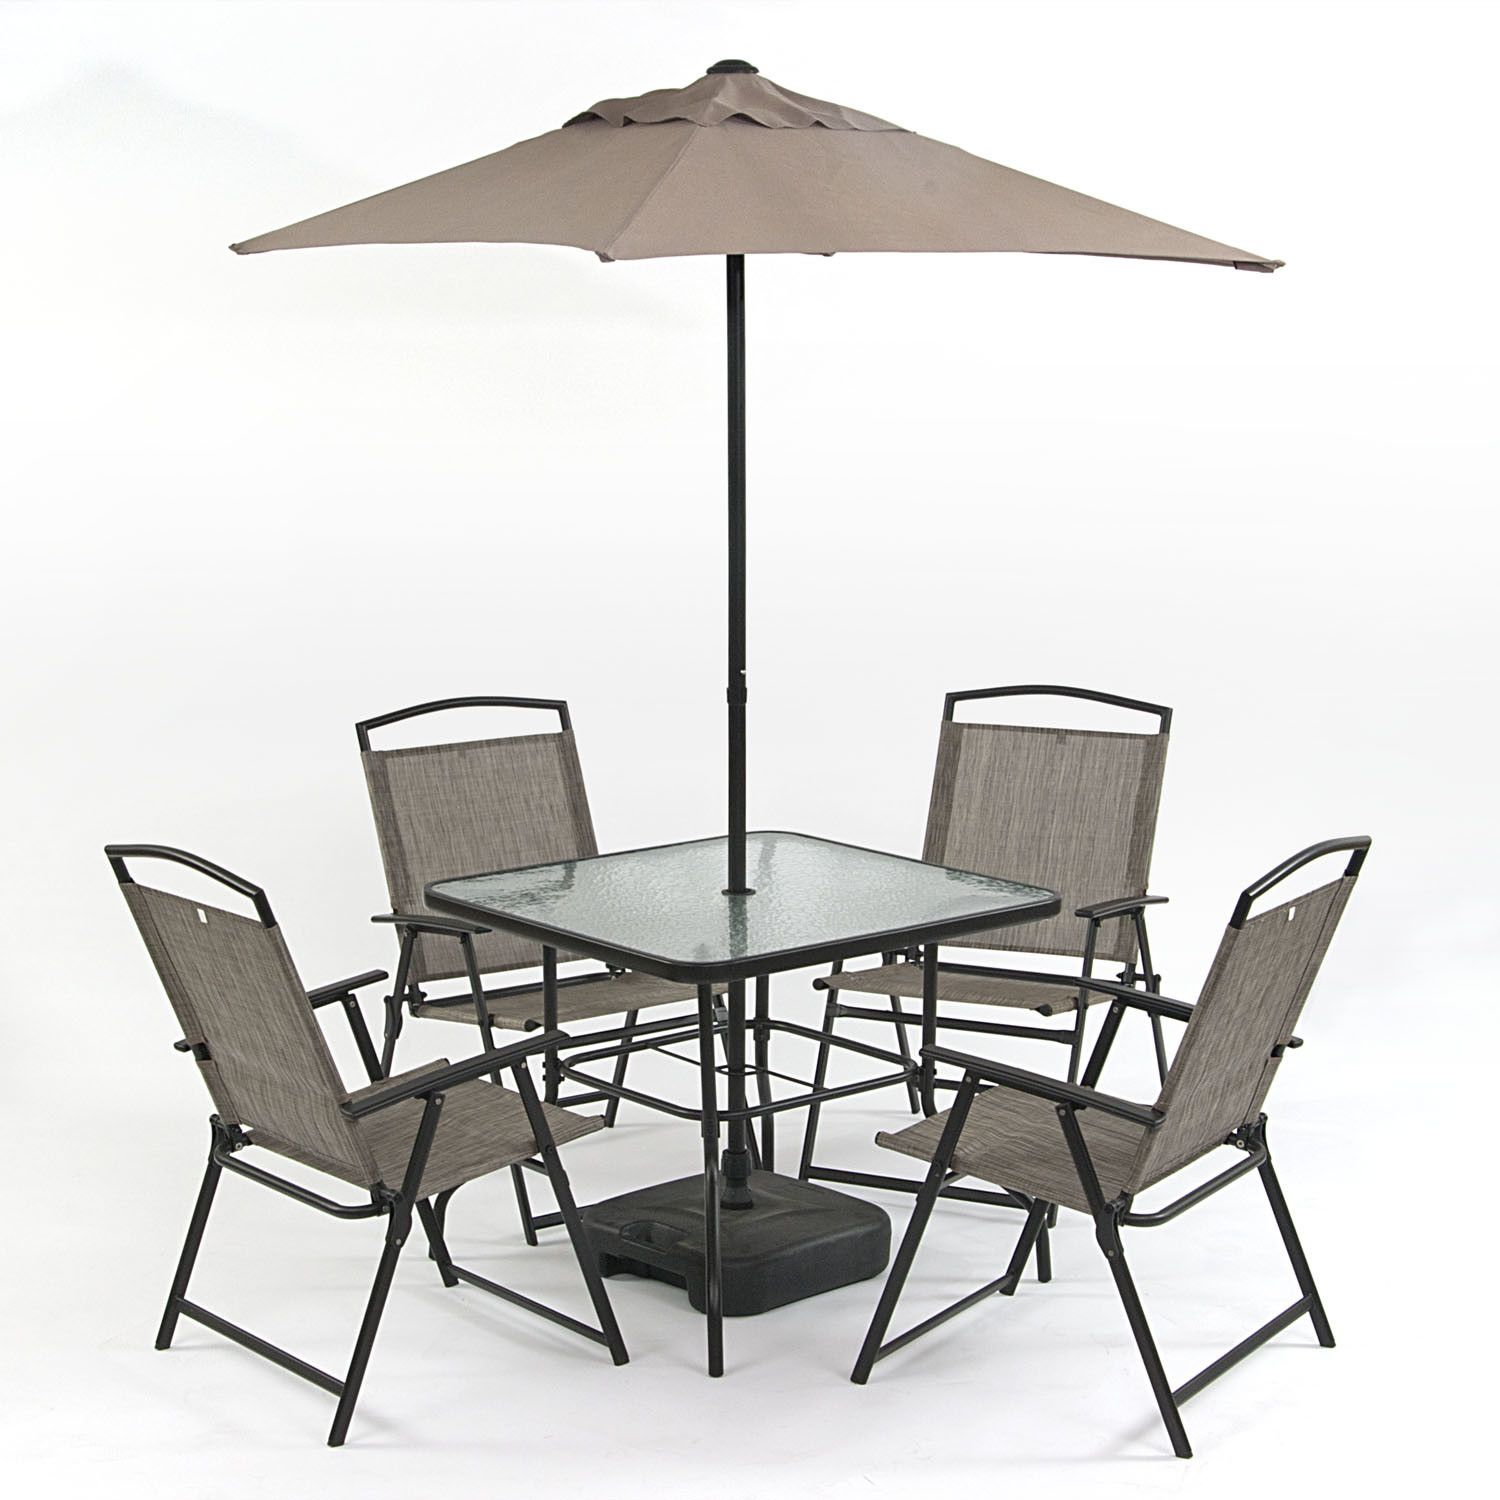 SunTime Outdoor Living Oasis 7 Piece Dining Set | ** MW Outdoors ...